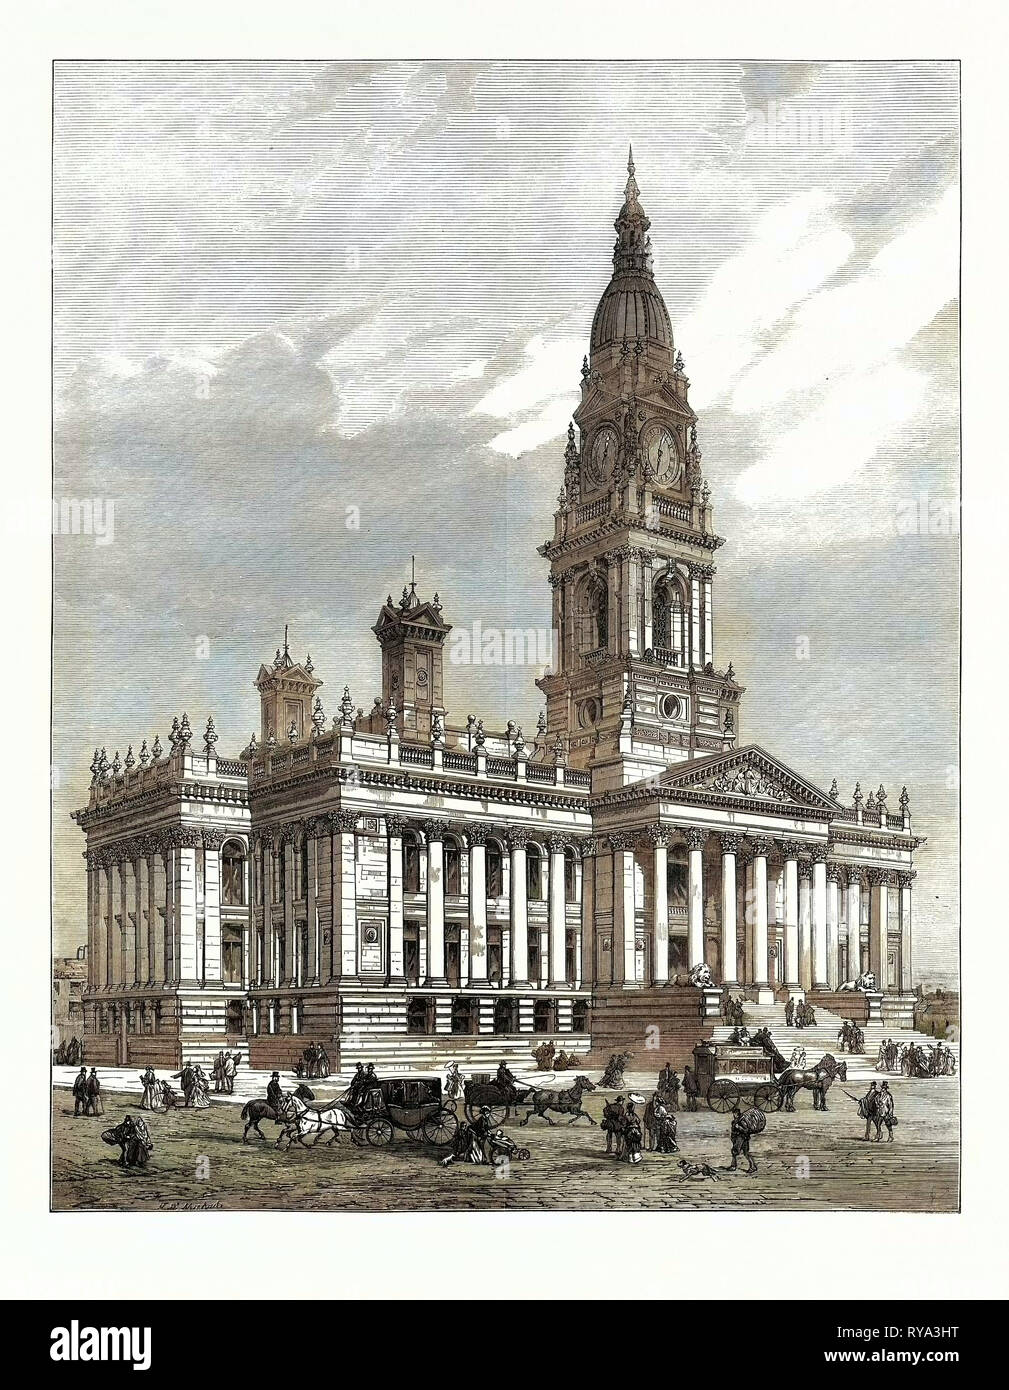 The New Townhall of Bolton, Lancashire, Opened by the Prince of Wales, UK, 1873 - Stock Image